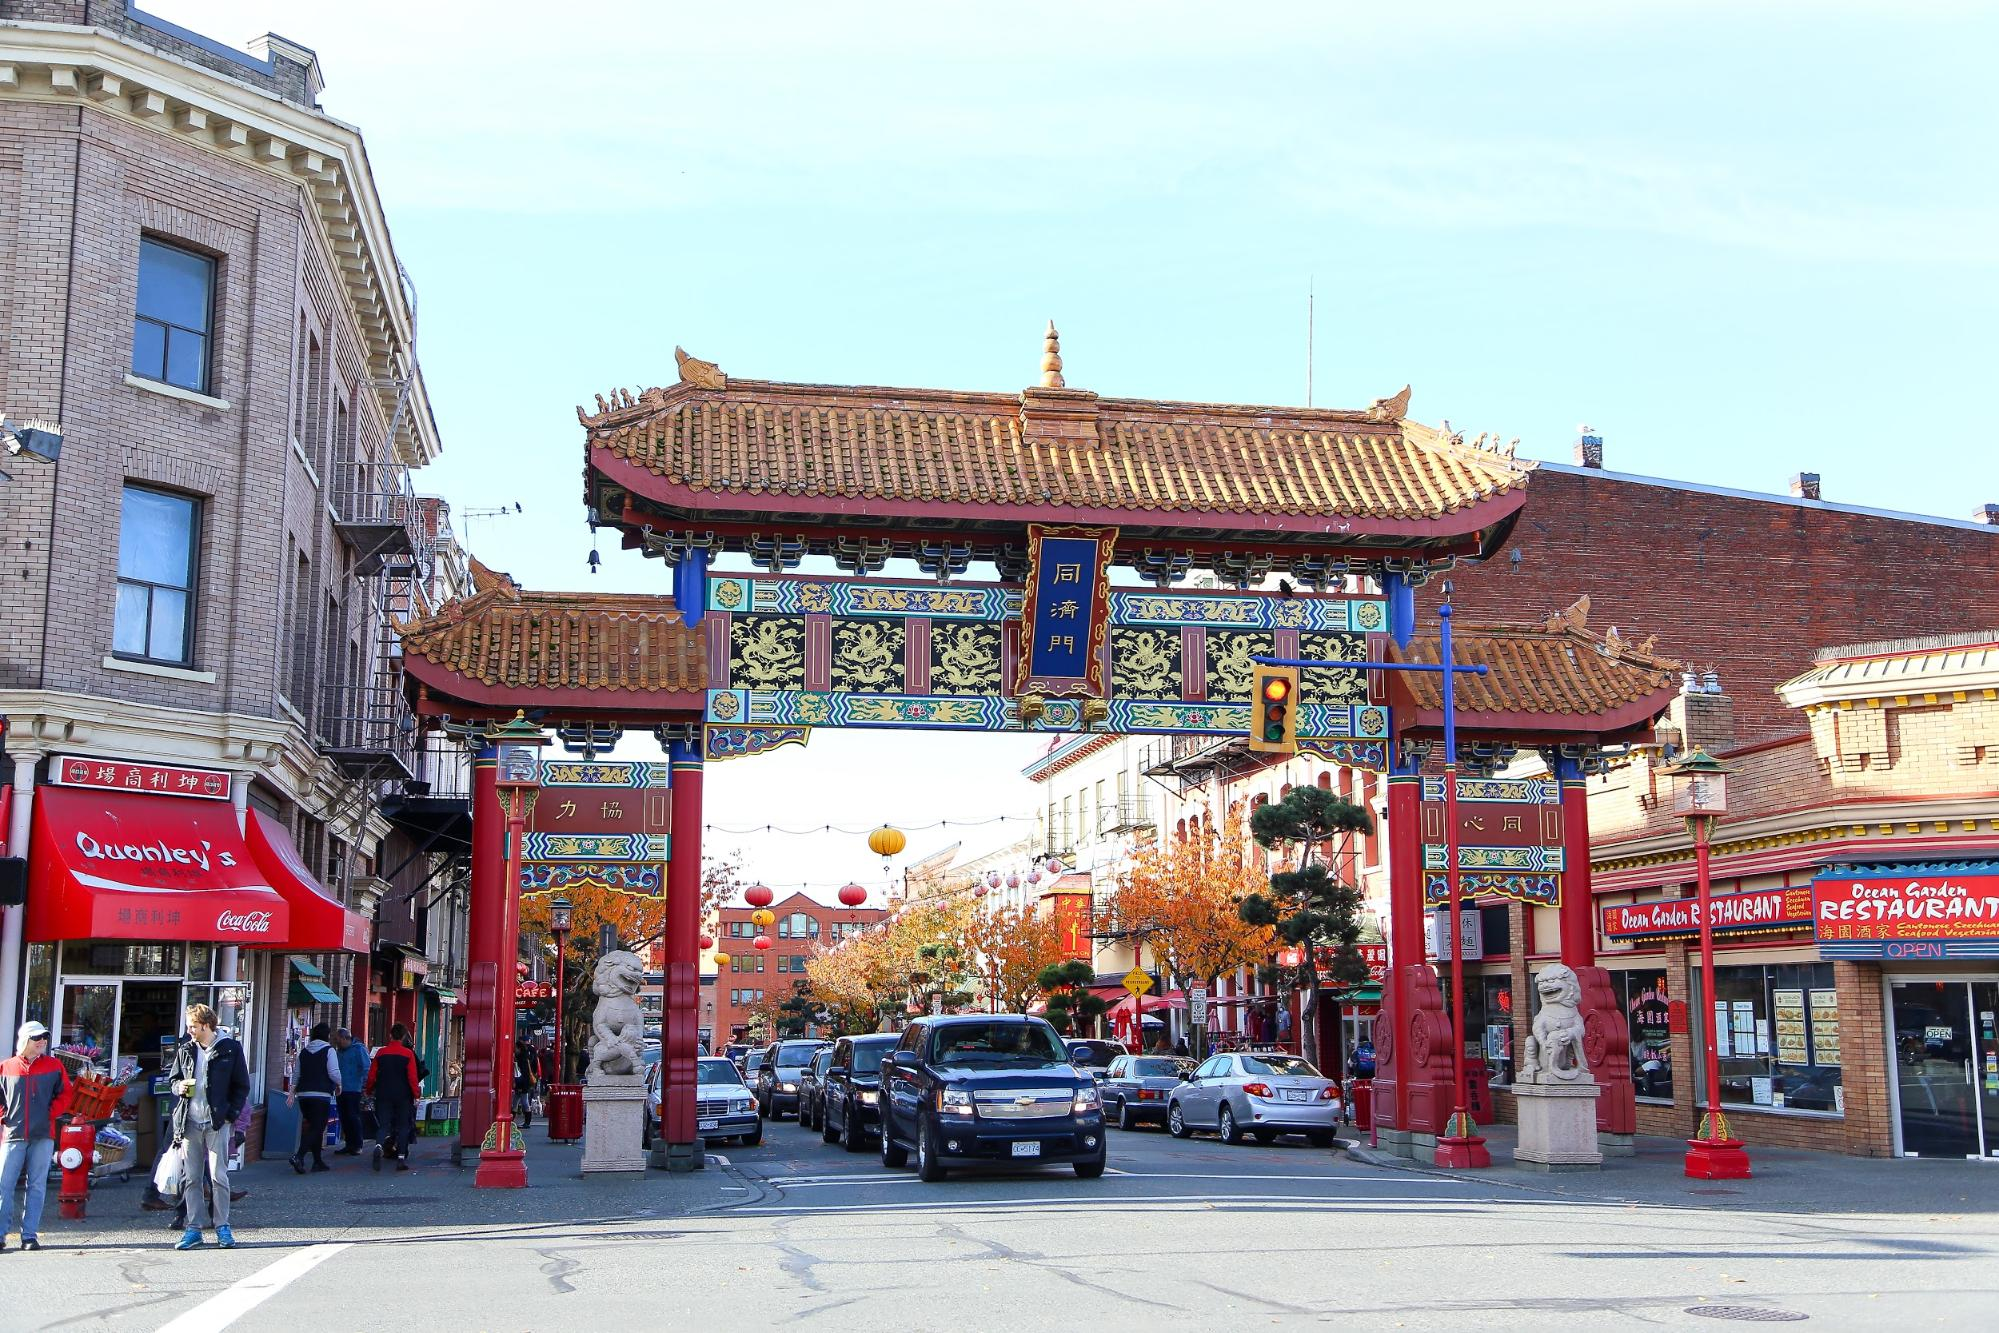 An intricately designed entrance on a city street to Chinatown.